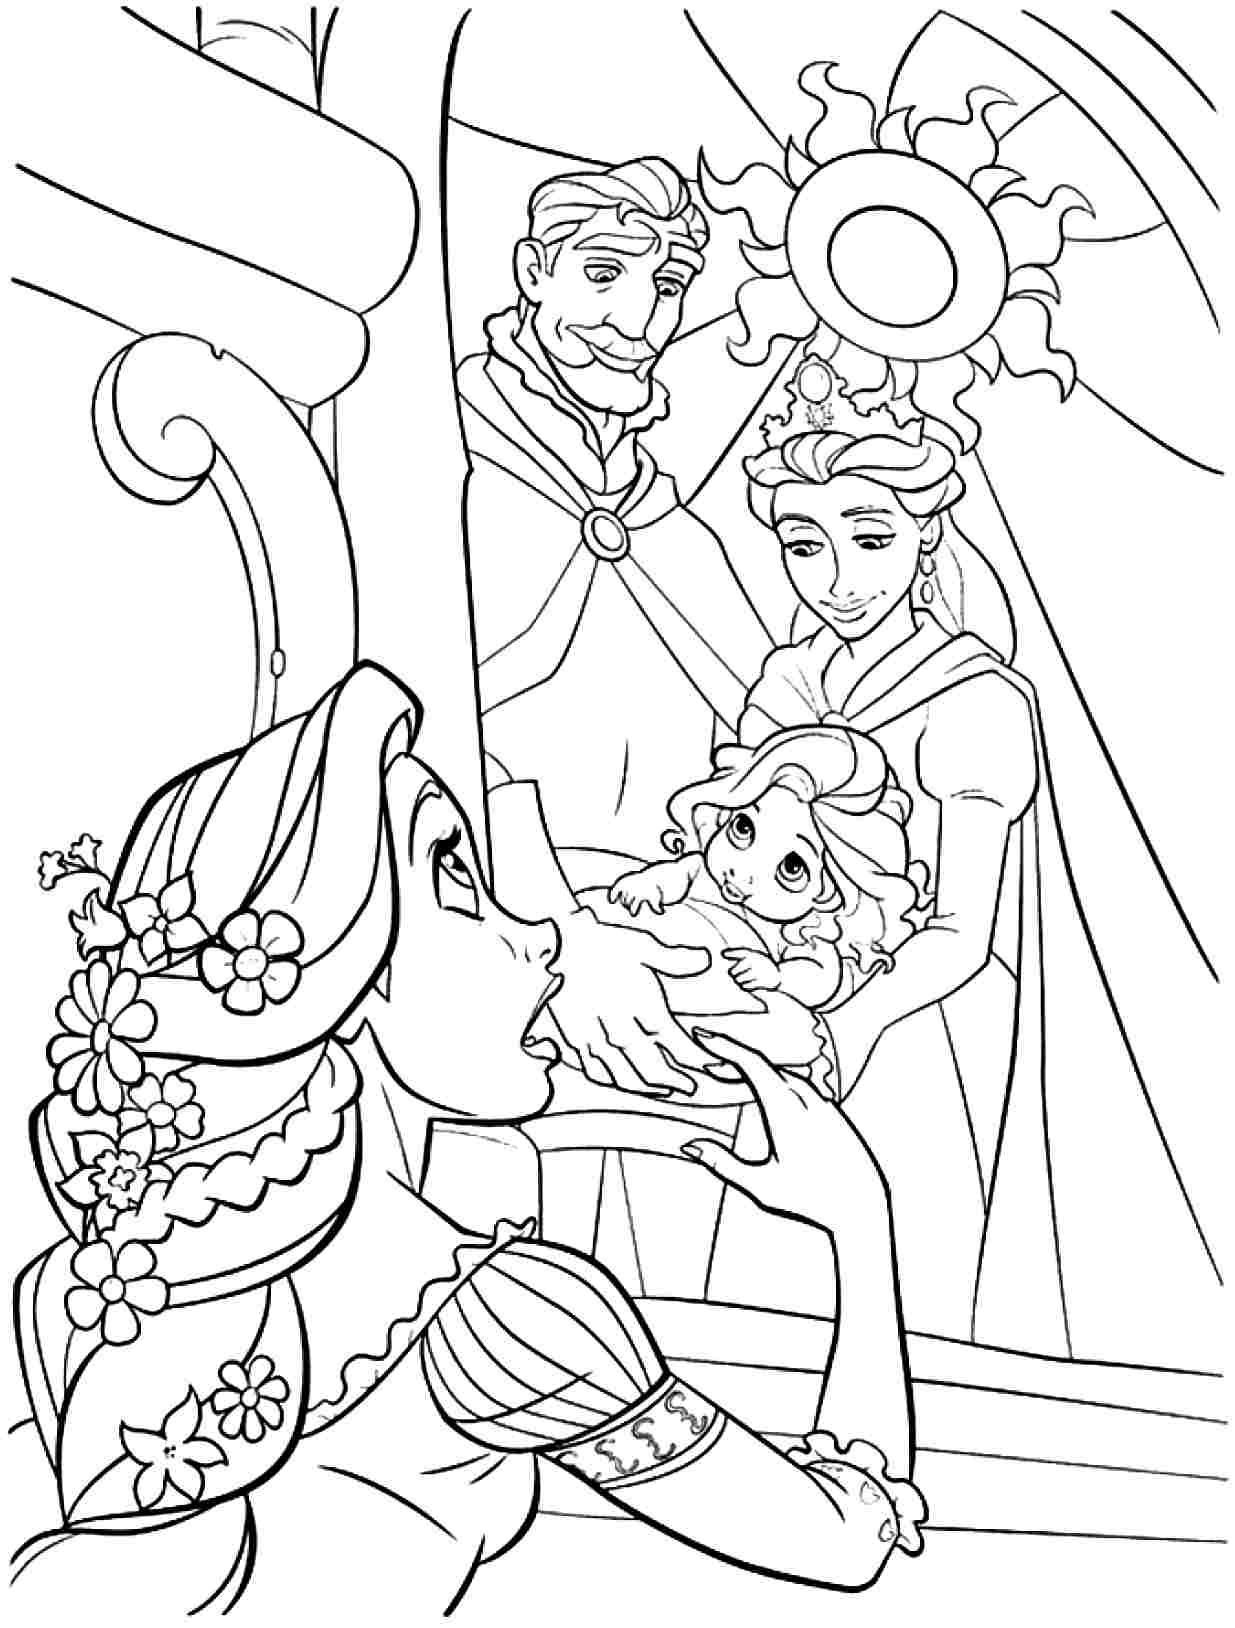 printable free coloring pages disney princess tangled rapunzel for kids 56011 - Rapunzel Coloring Pages To Print